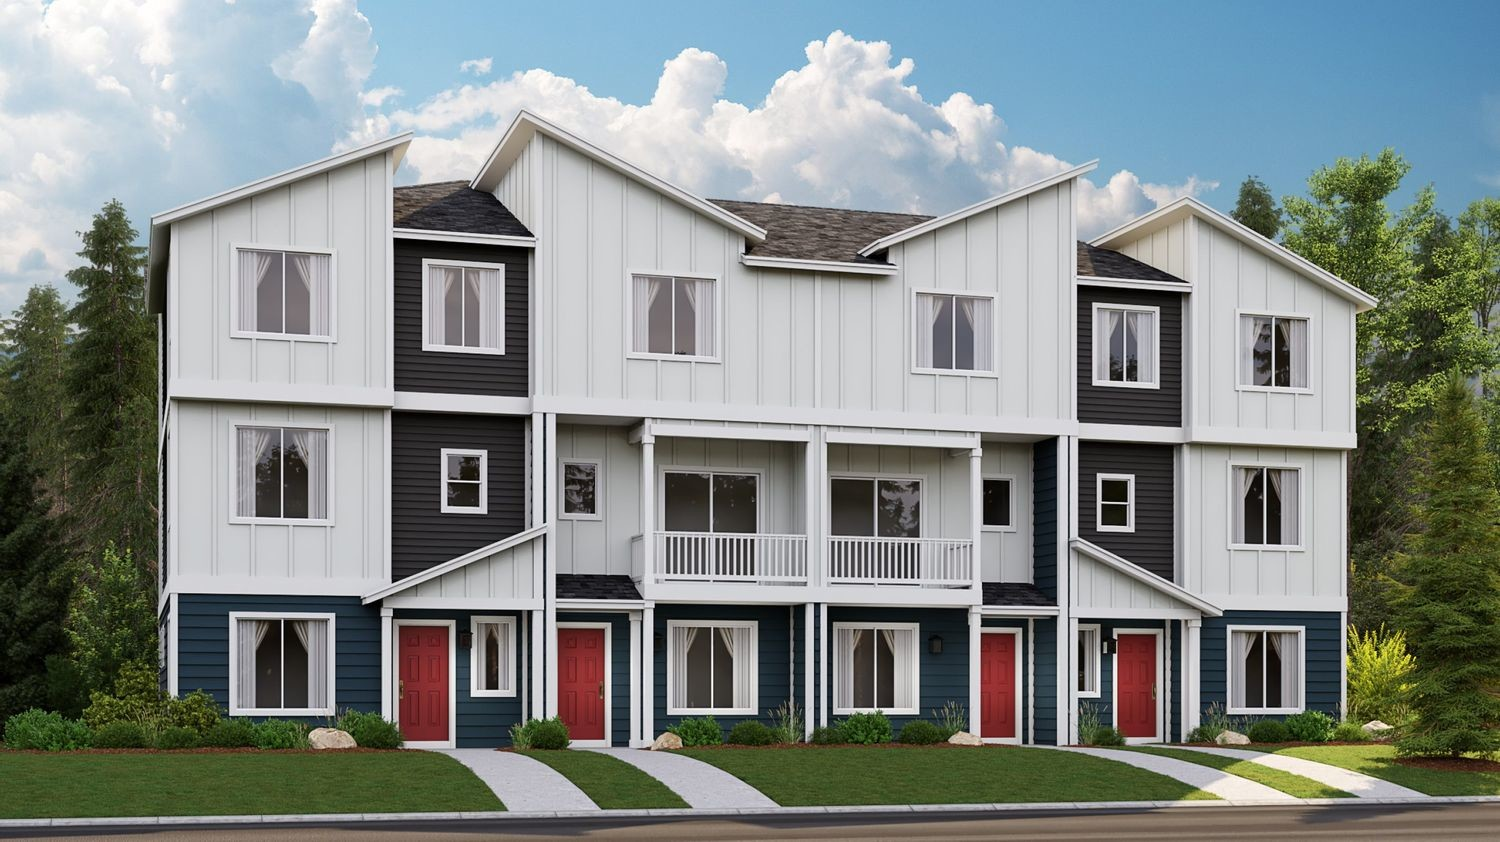 Ready To Build Home In Ten Trails - Village Green Townhomes Community